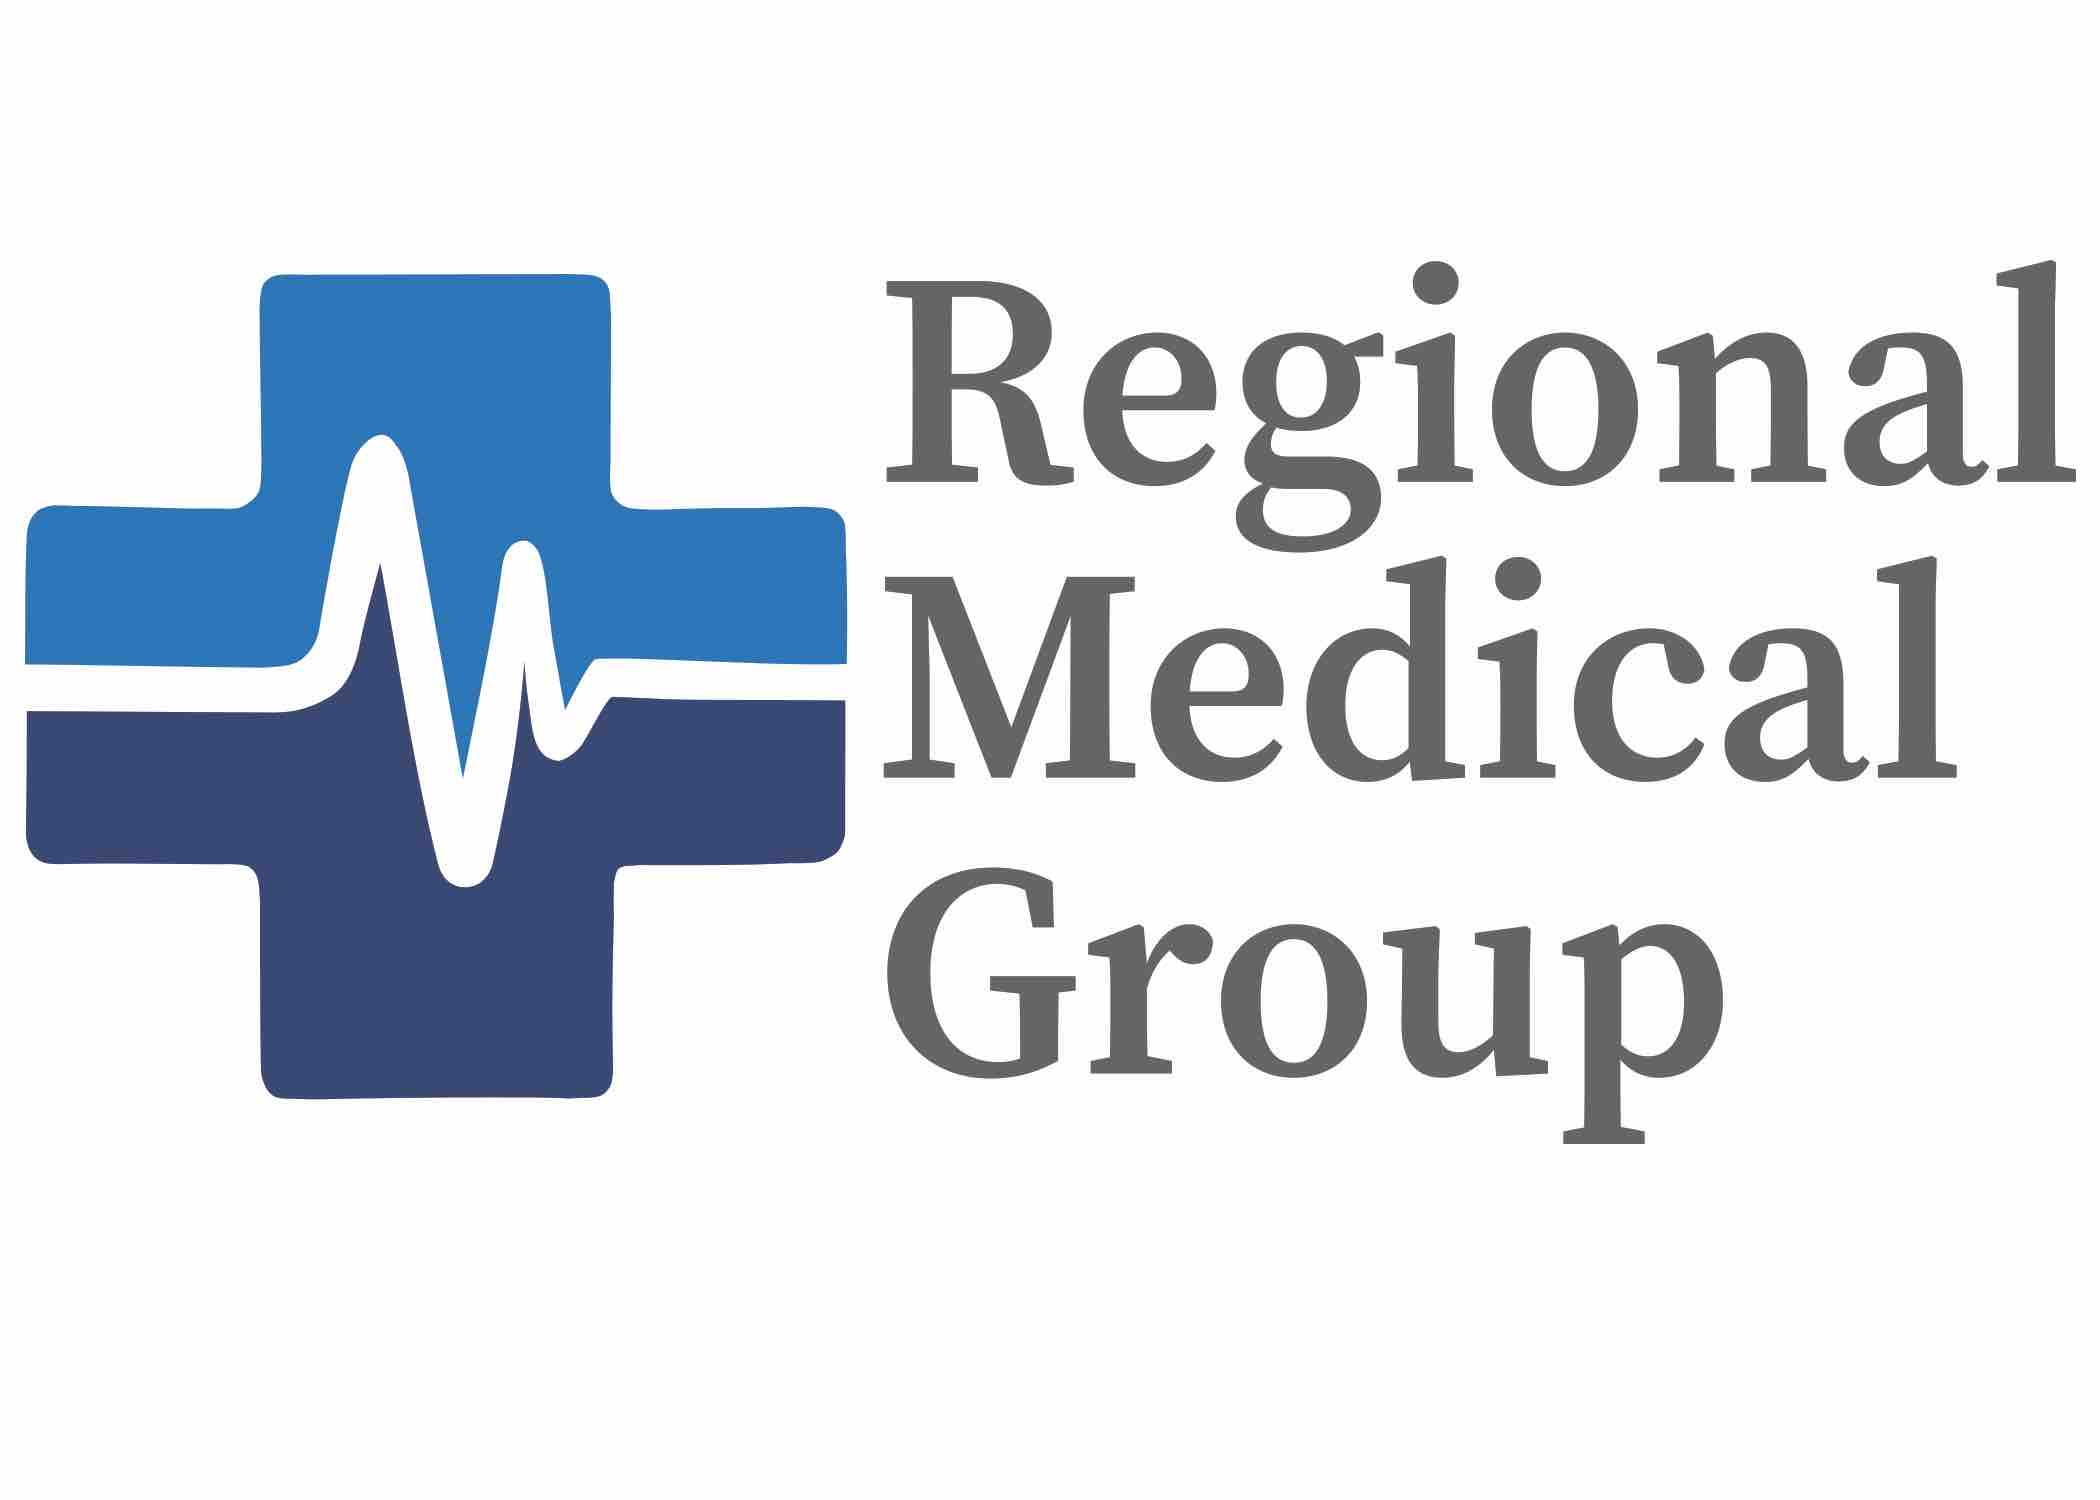 Regional Medical Group Launches its First Issue of Regional Medical Magazine